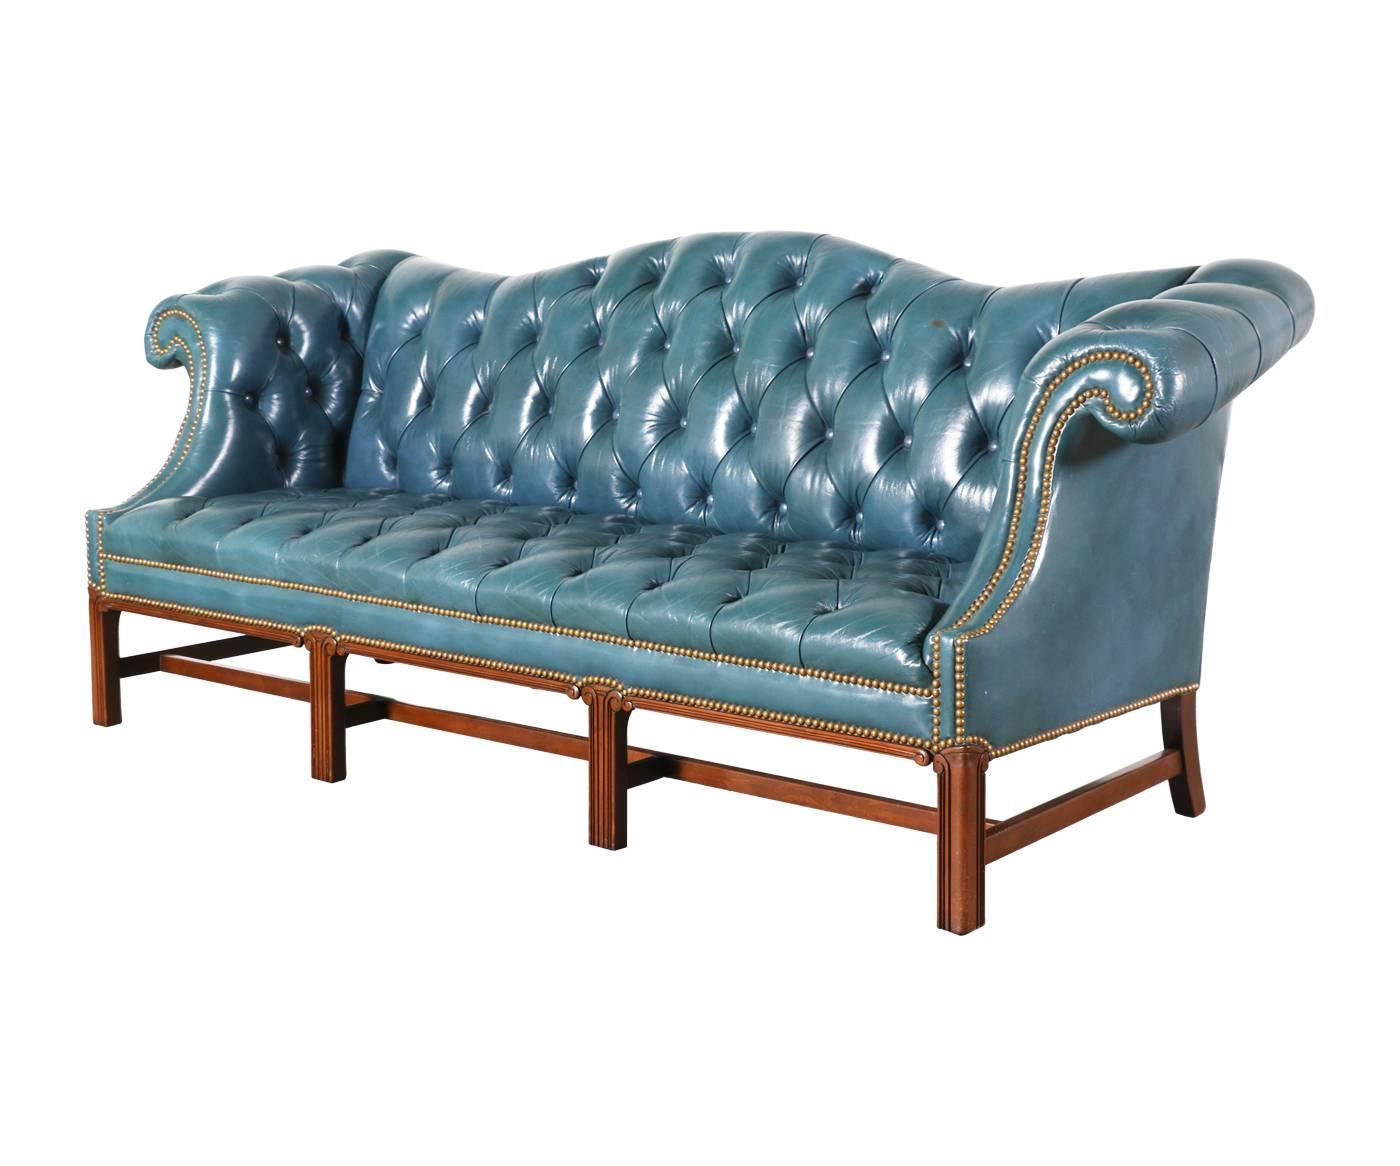 vintage leather teal blue chesterfield sofa for sale at 1stdibs